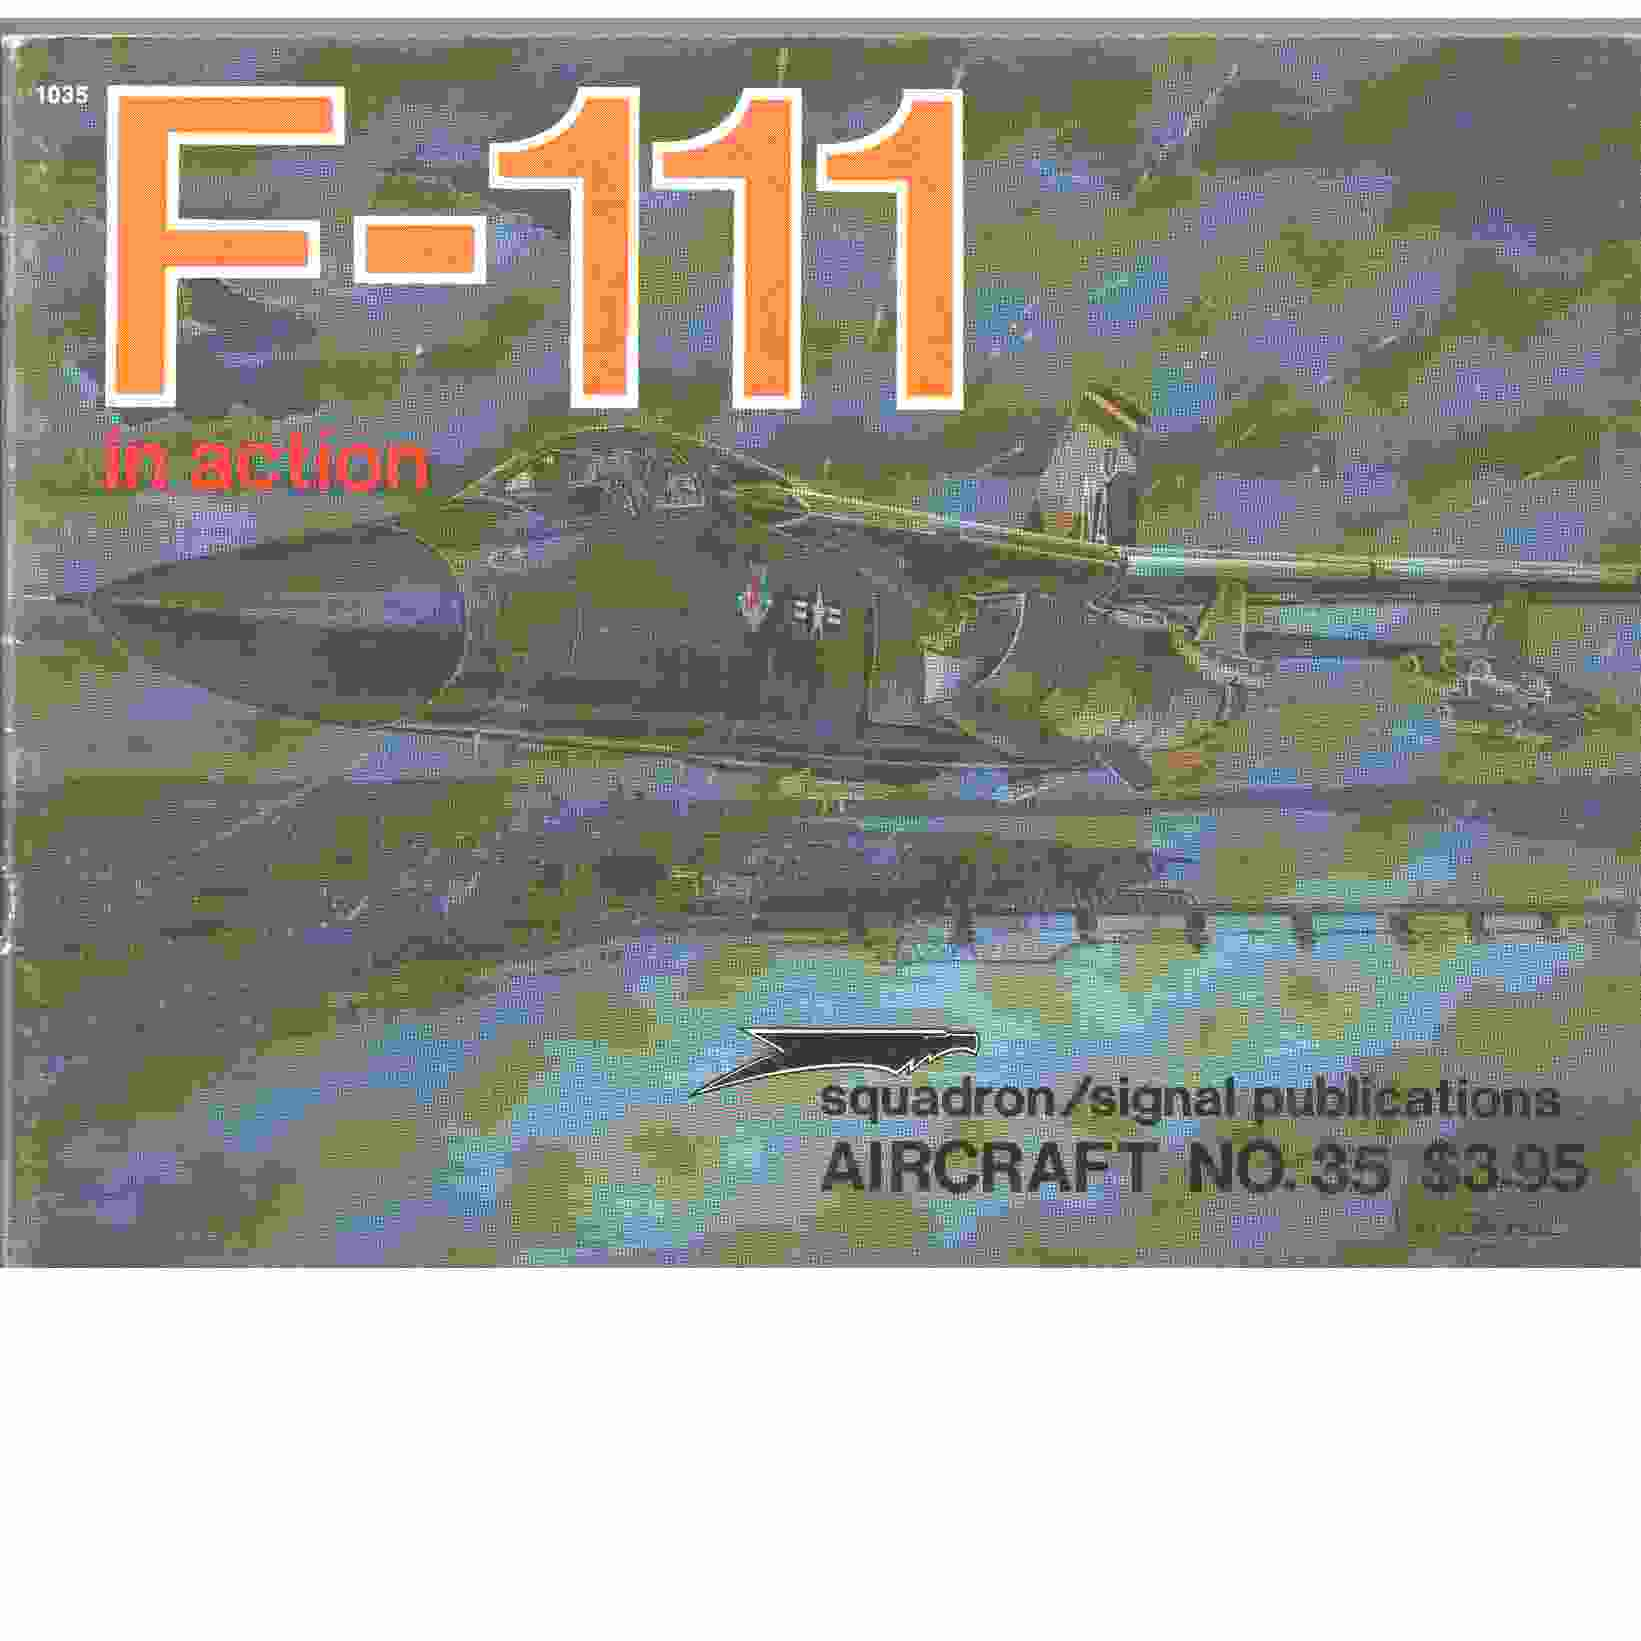 F-111 in Action - Aircraft No. 35  - Drendel, Lou